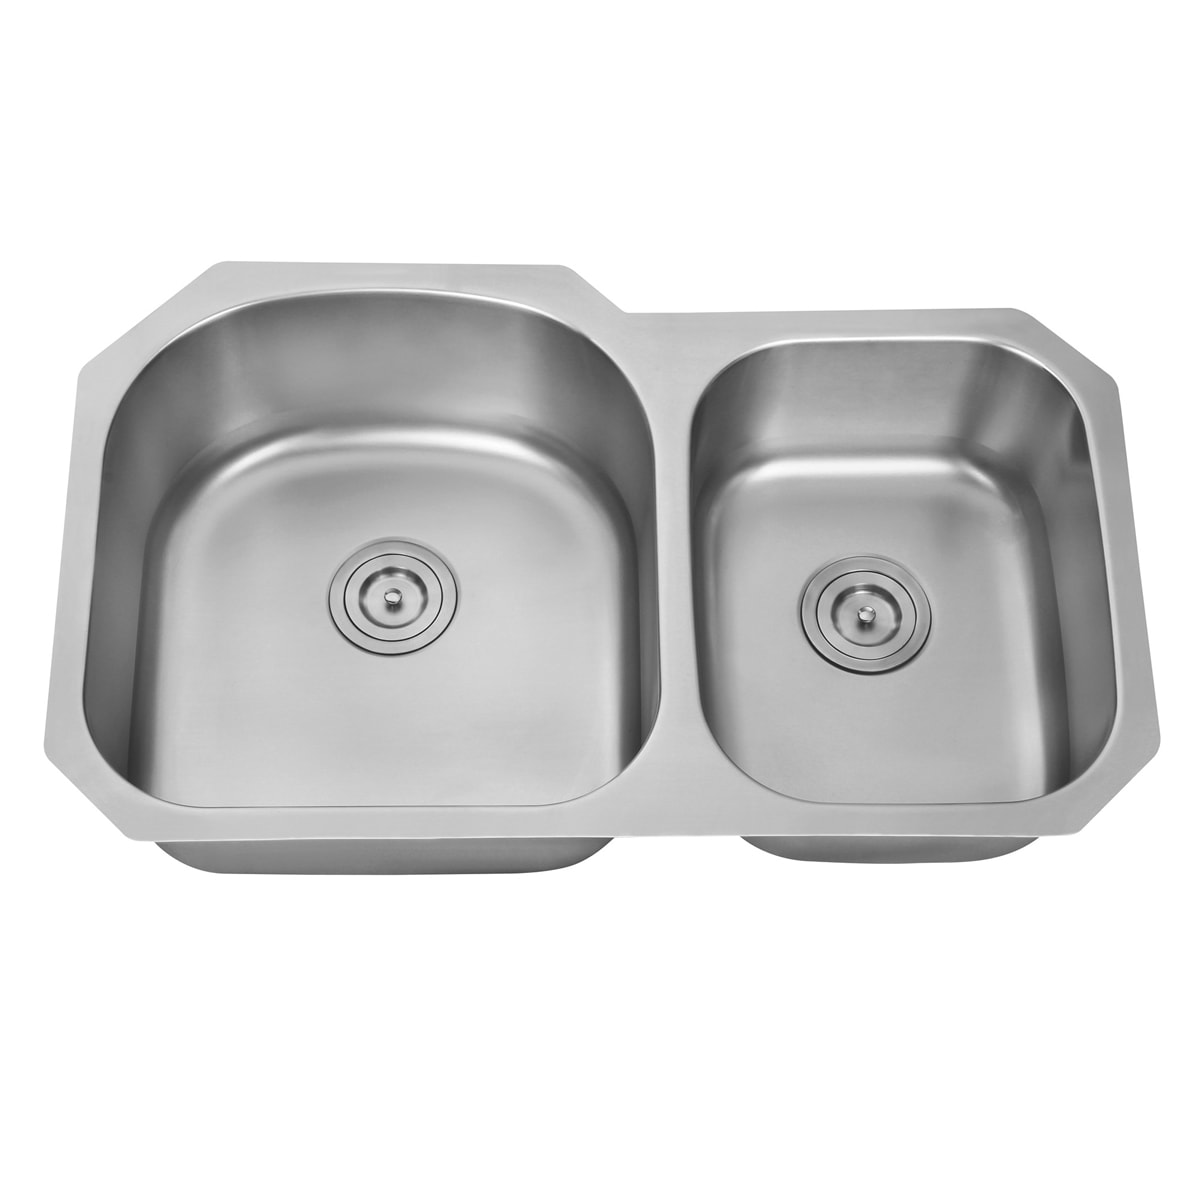 Ruvati 34 Inch Undermount 60 40 Double Bowl 16 Gauge Stainless Steel Kitchen Sink Rvm4600 Free Shipping Today 7029821